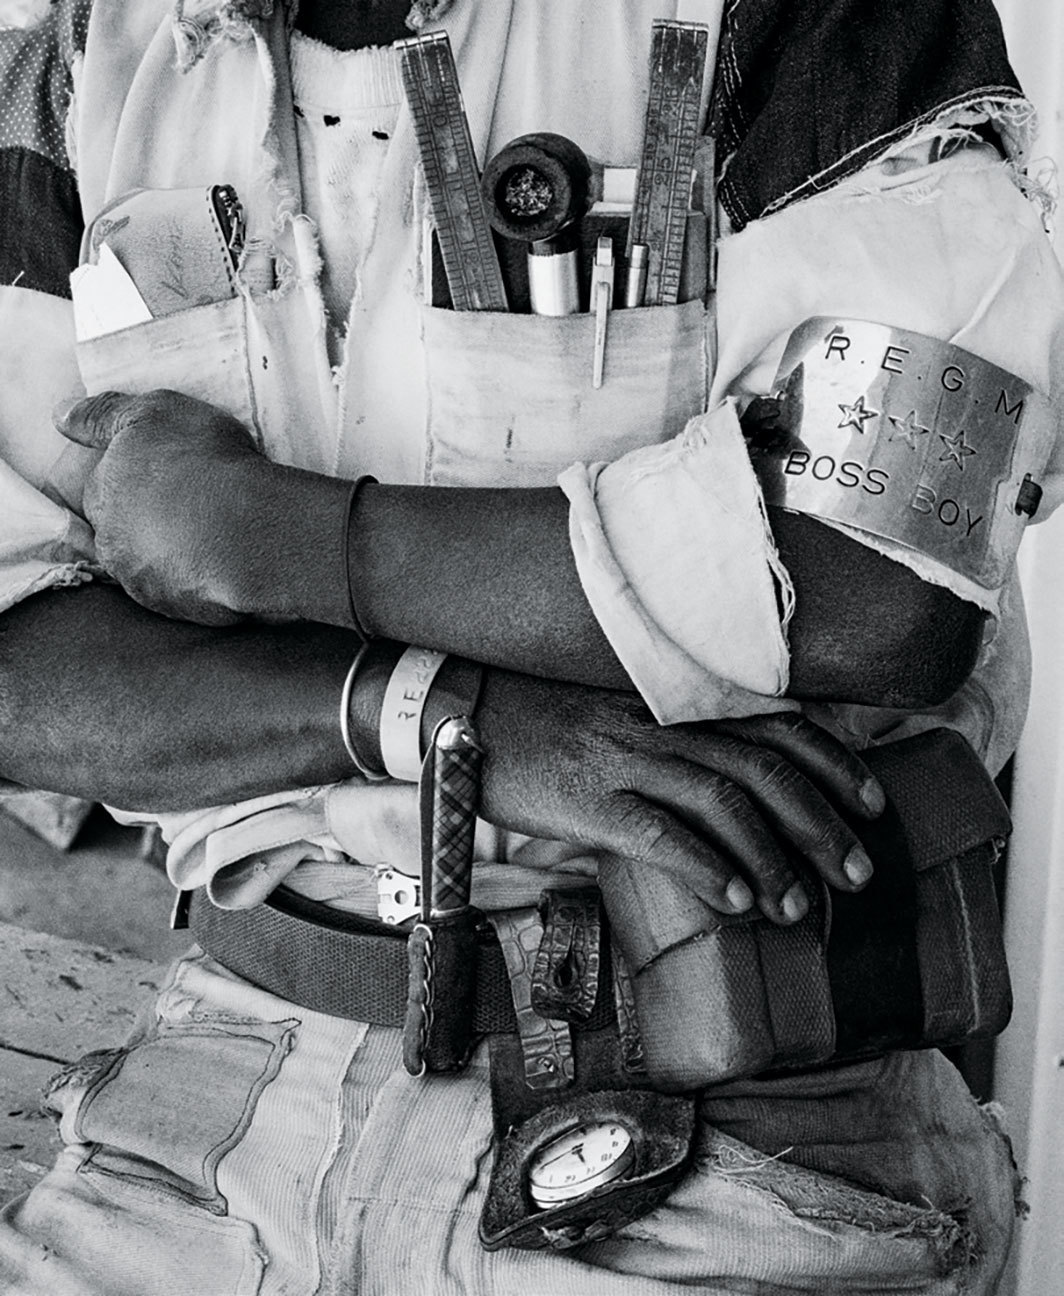 "David Goldblatt, 'Boss Boy' detail, Battery Reef, Randfontein Estates Gold Mine, 1966, carbon ink on paper, 14 3⁄8 × 11 3⁄4""."